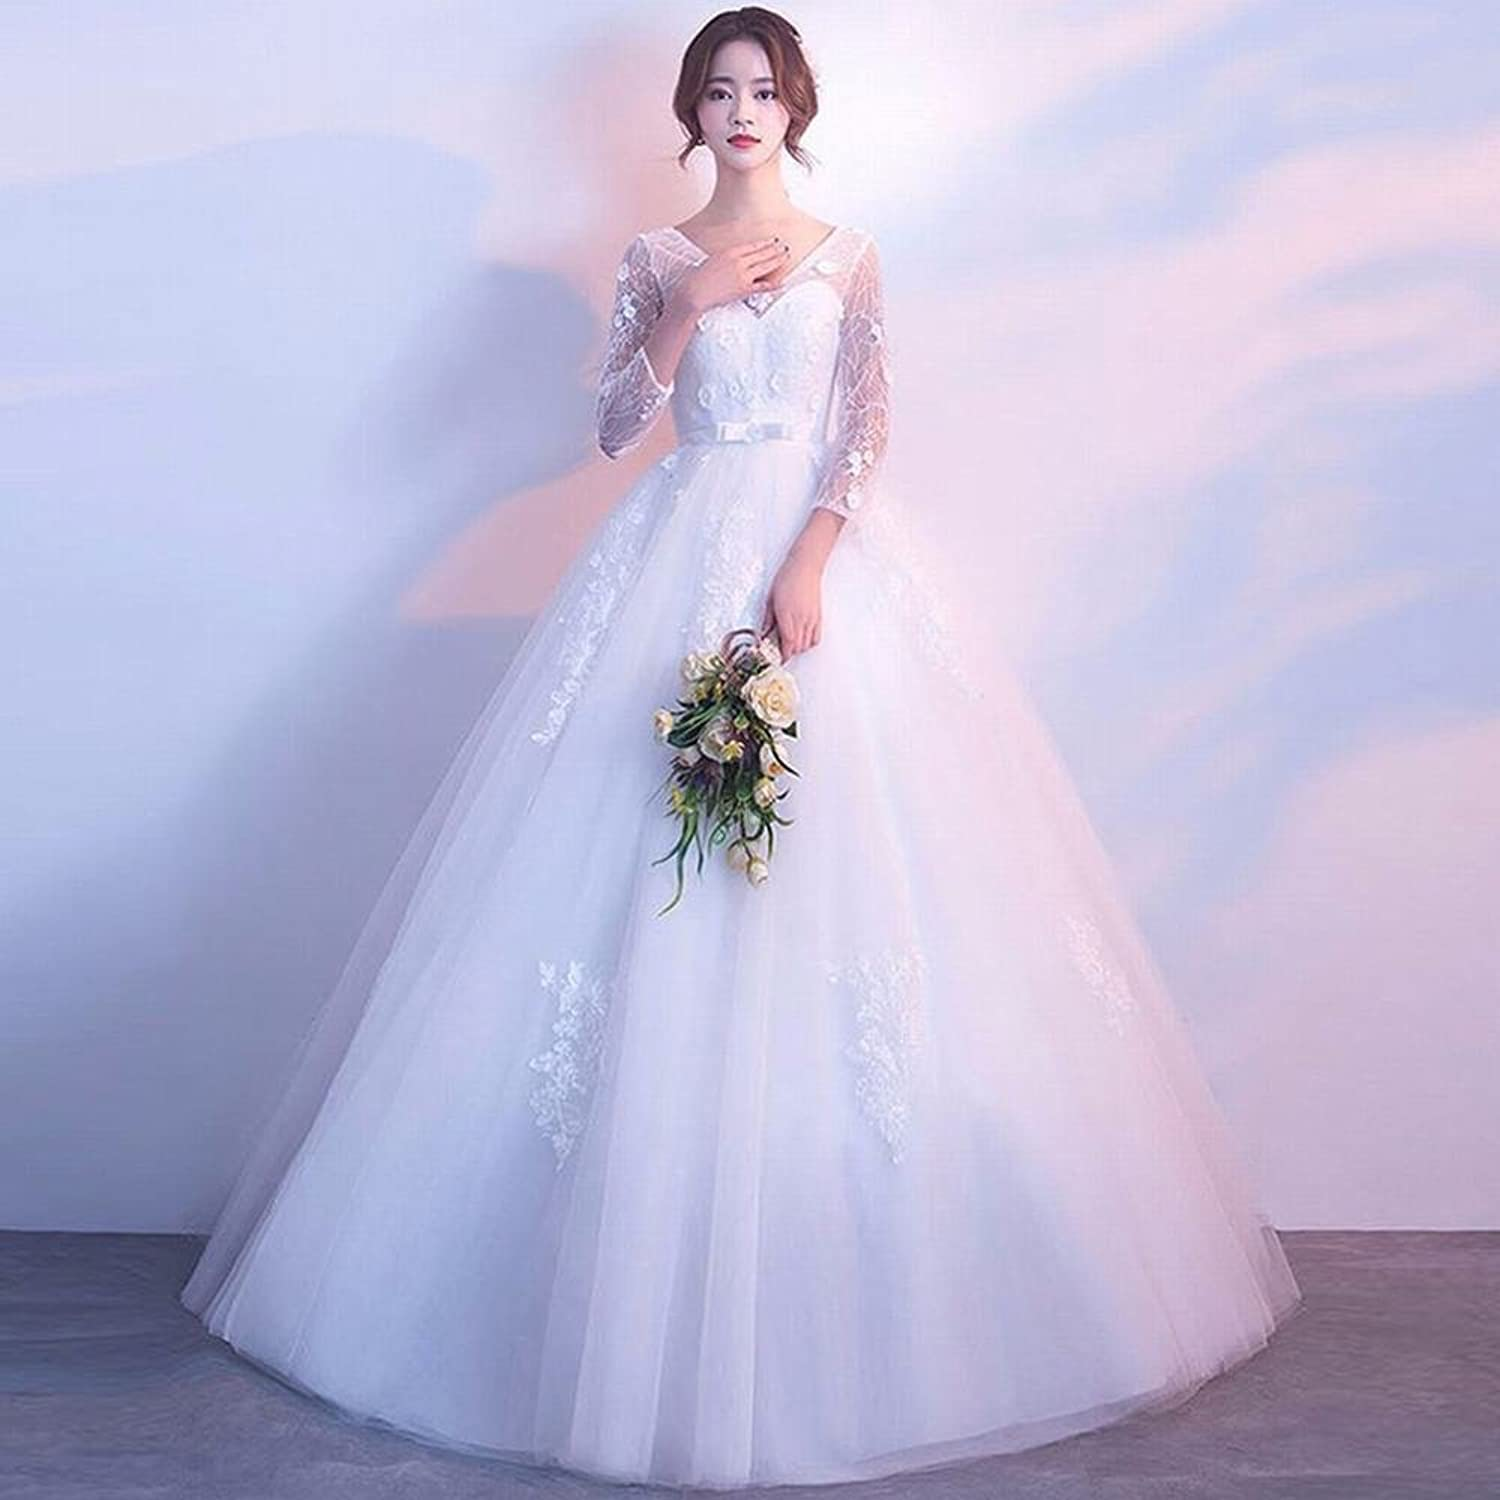 Wedding Dress Korean Bride Married high Waist Large Size Long Sleeves Thin Qi Princess Spring and Summer SLR